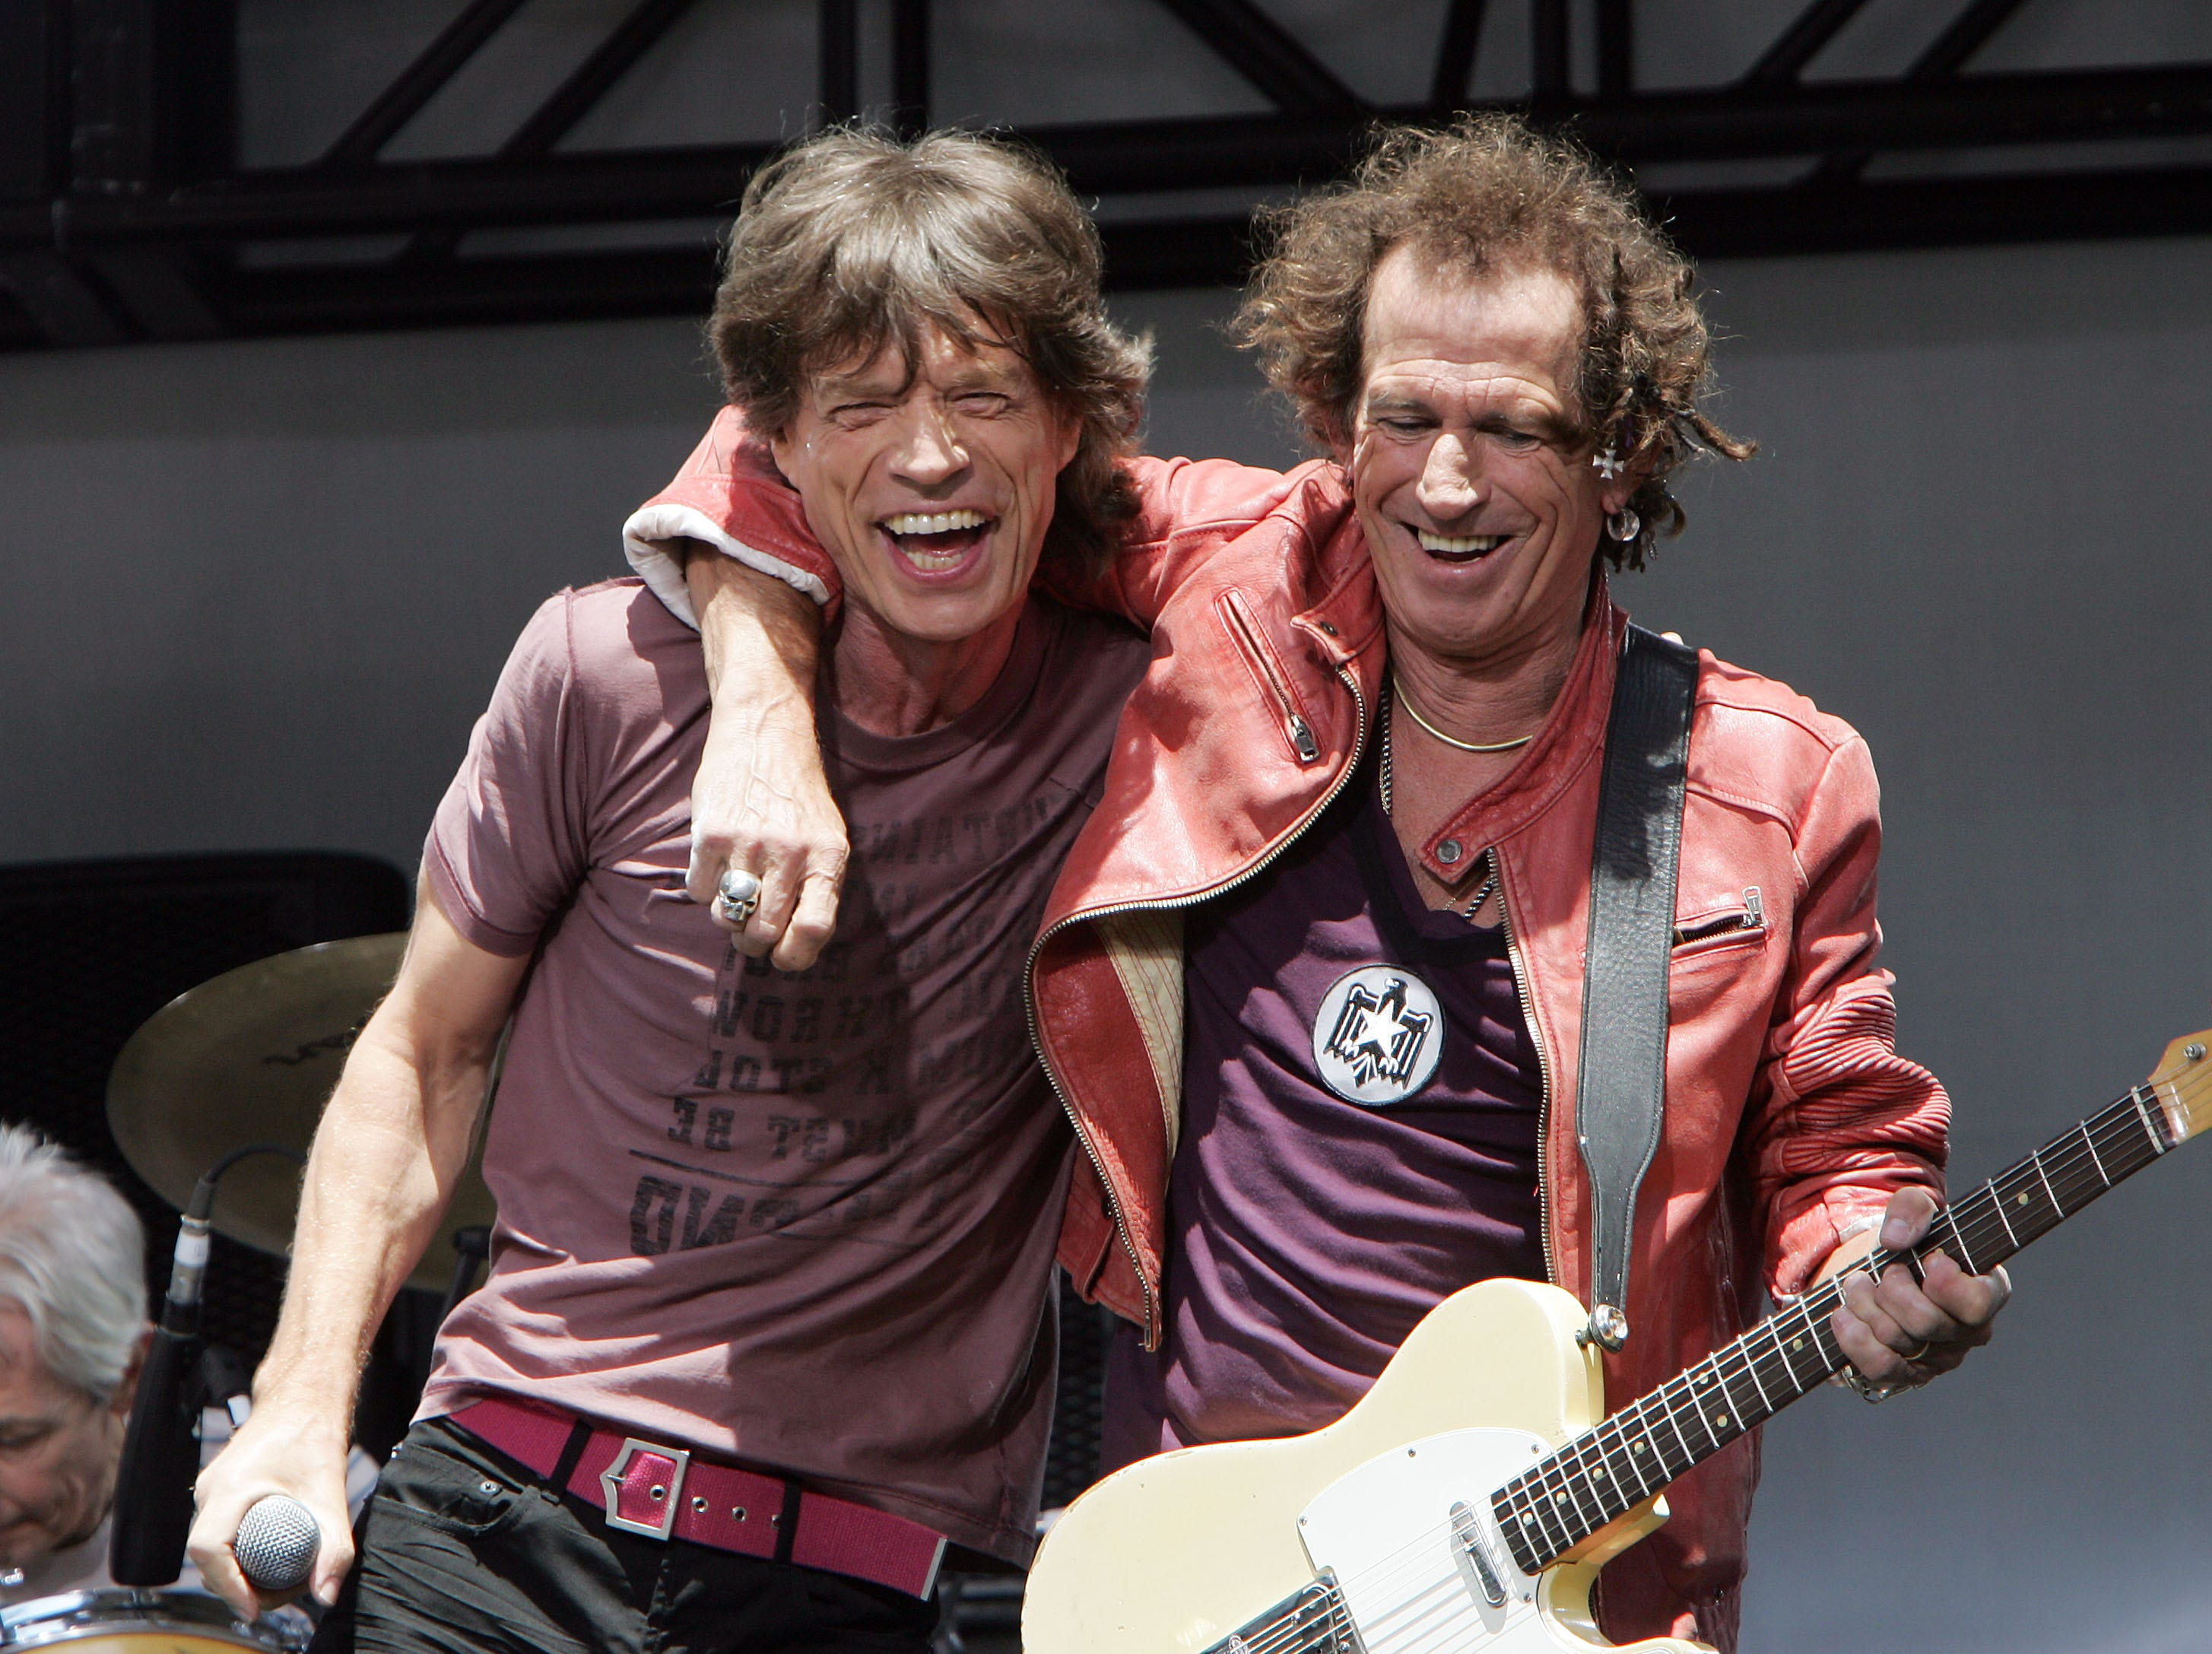 NEW YORK - MAY 10:  Keith Richards (R) and Mick Jagger of The Rolling Stones perform onstage during a press conference to announce a world tour at the Julliard Music School May 10, 2005 in New York City.  (Photo by Scott Gries/Getty Images) *** Local Caption *** Keith Richards; Mick Jagger ORG XMIT: 52773249 GTY ID: 73249SG035_rs